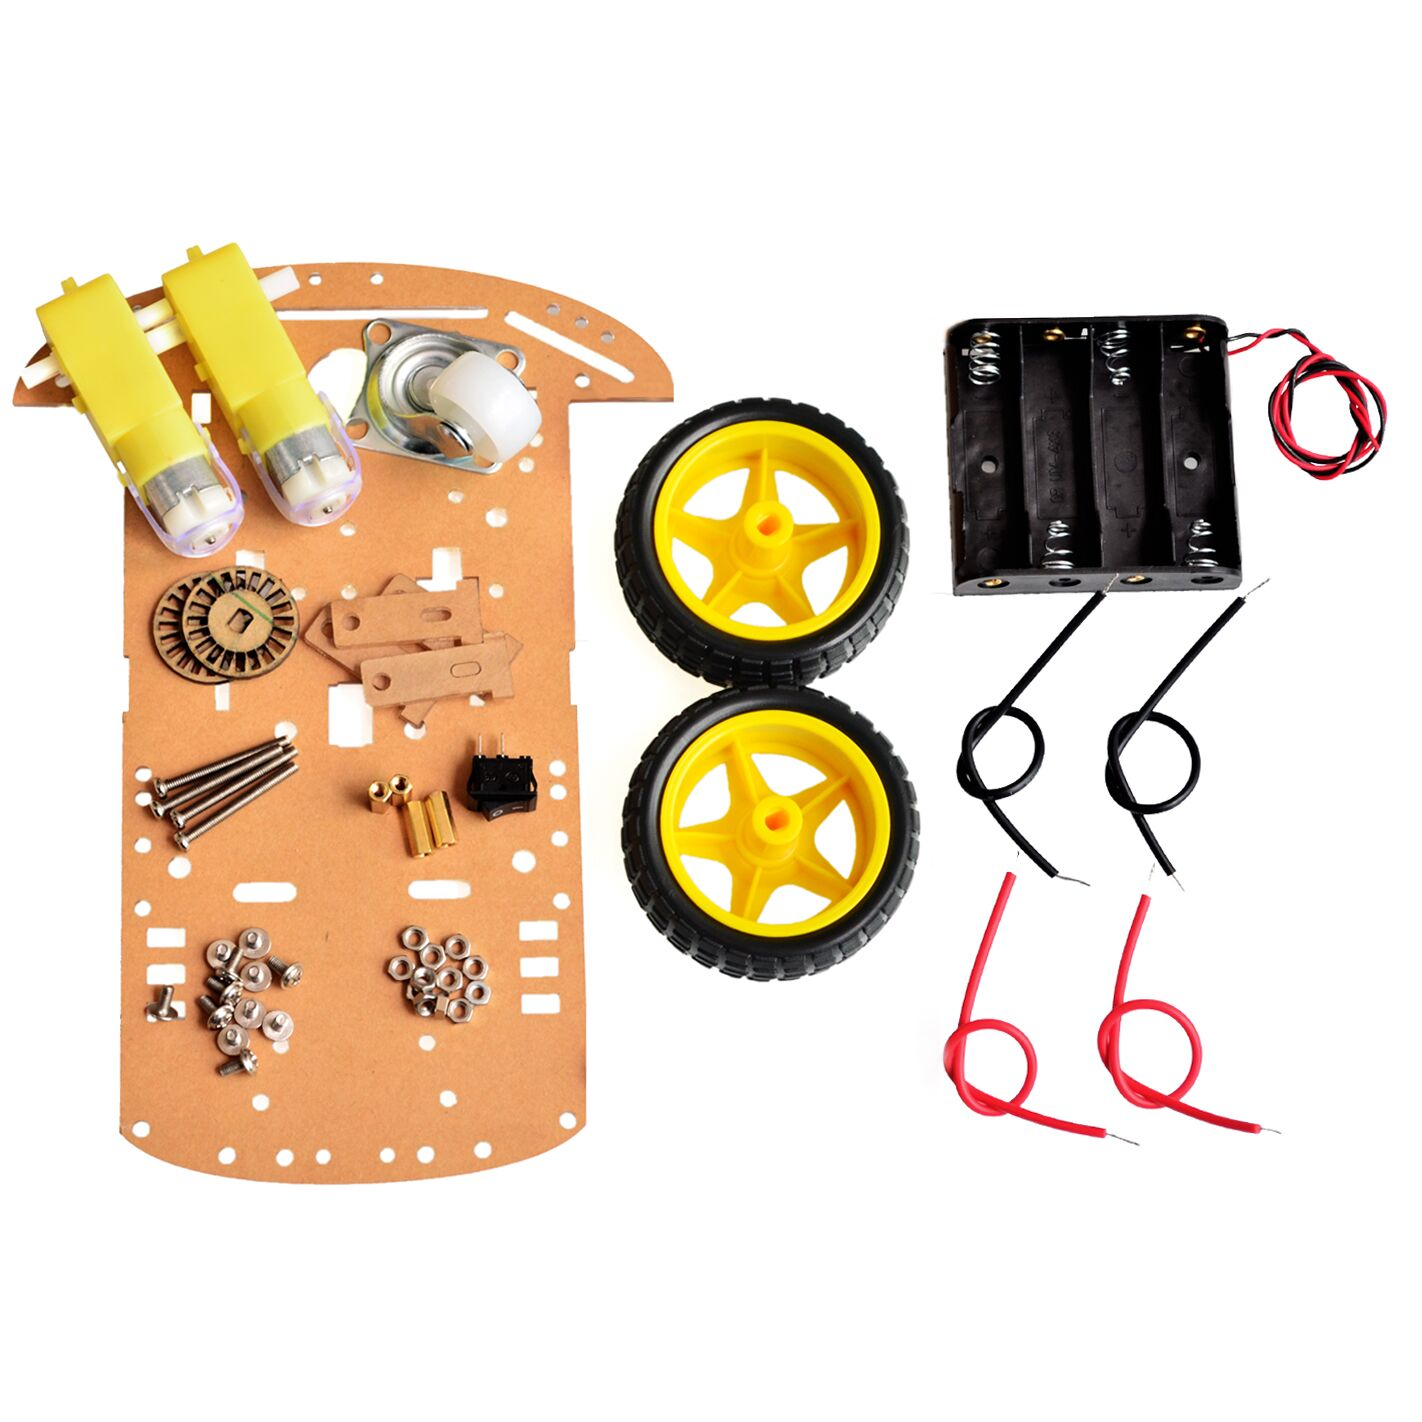 2WD Motor Smart Robot Car Chassis Kit Speed Encoder Battery Box For2WD Motor Smart Robot Car Chassis Kit Speed Encoder Battery Box For